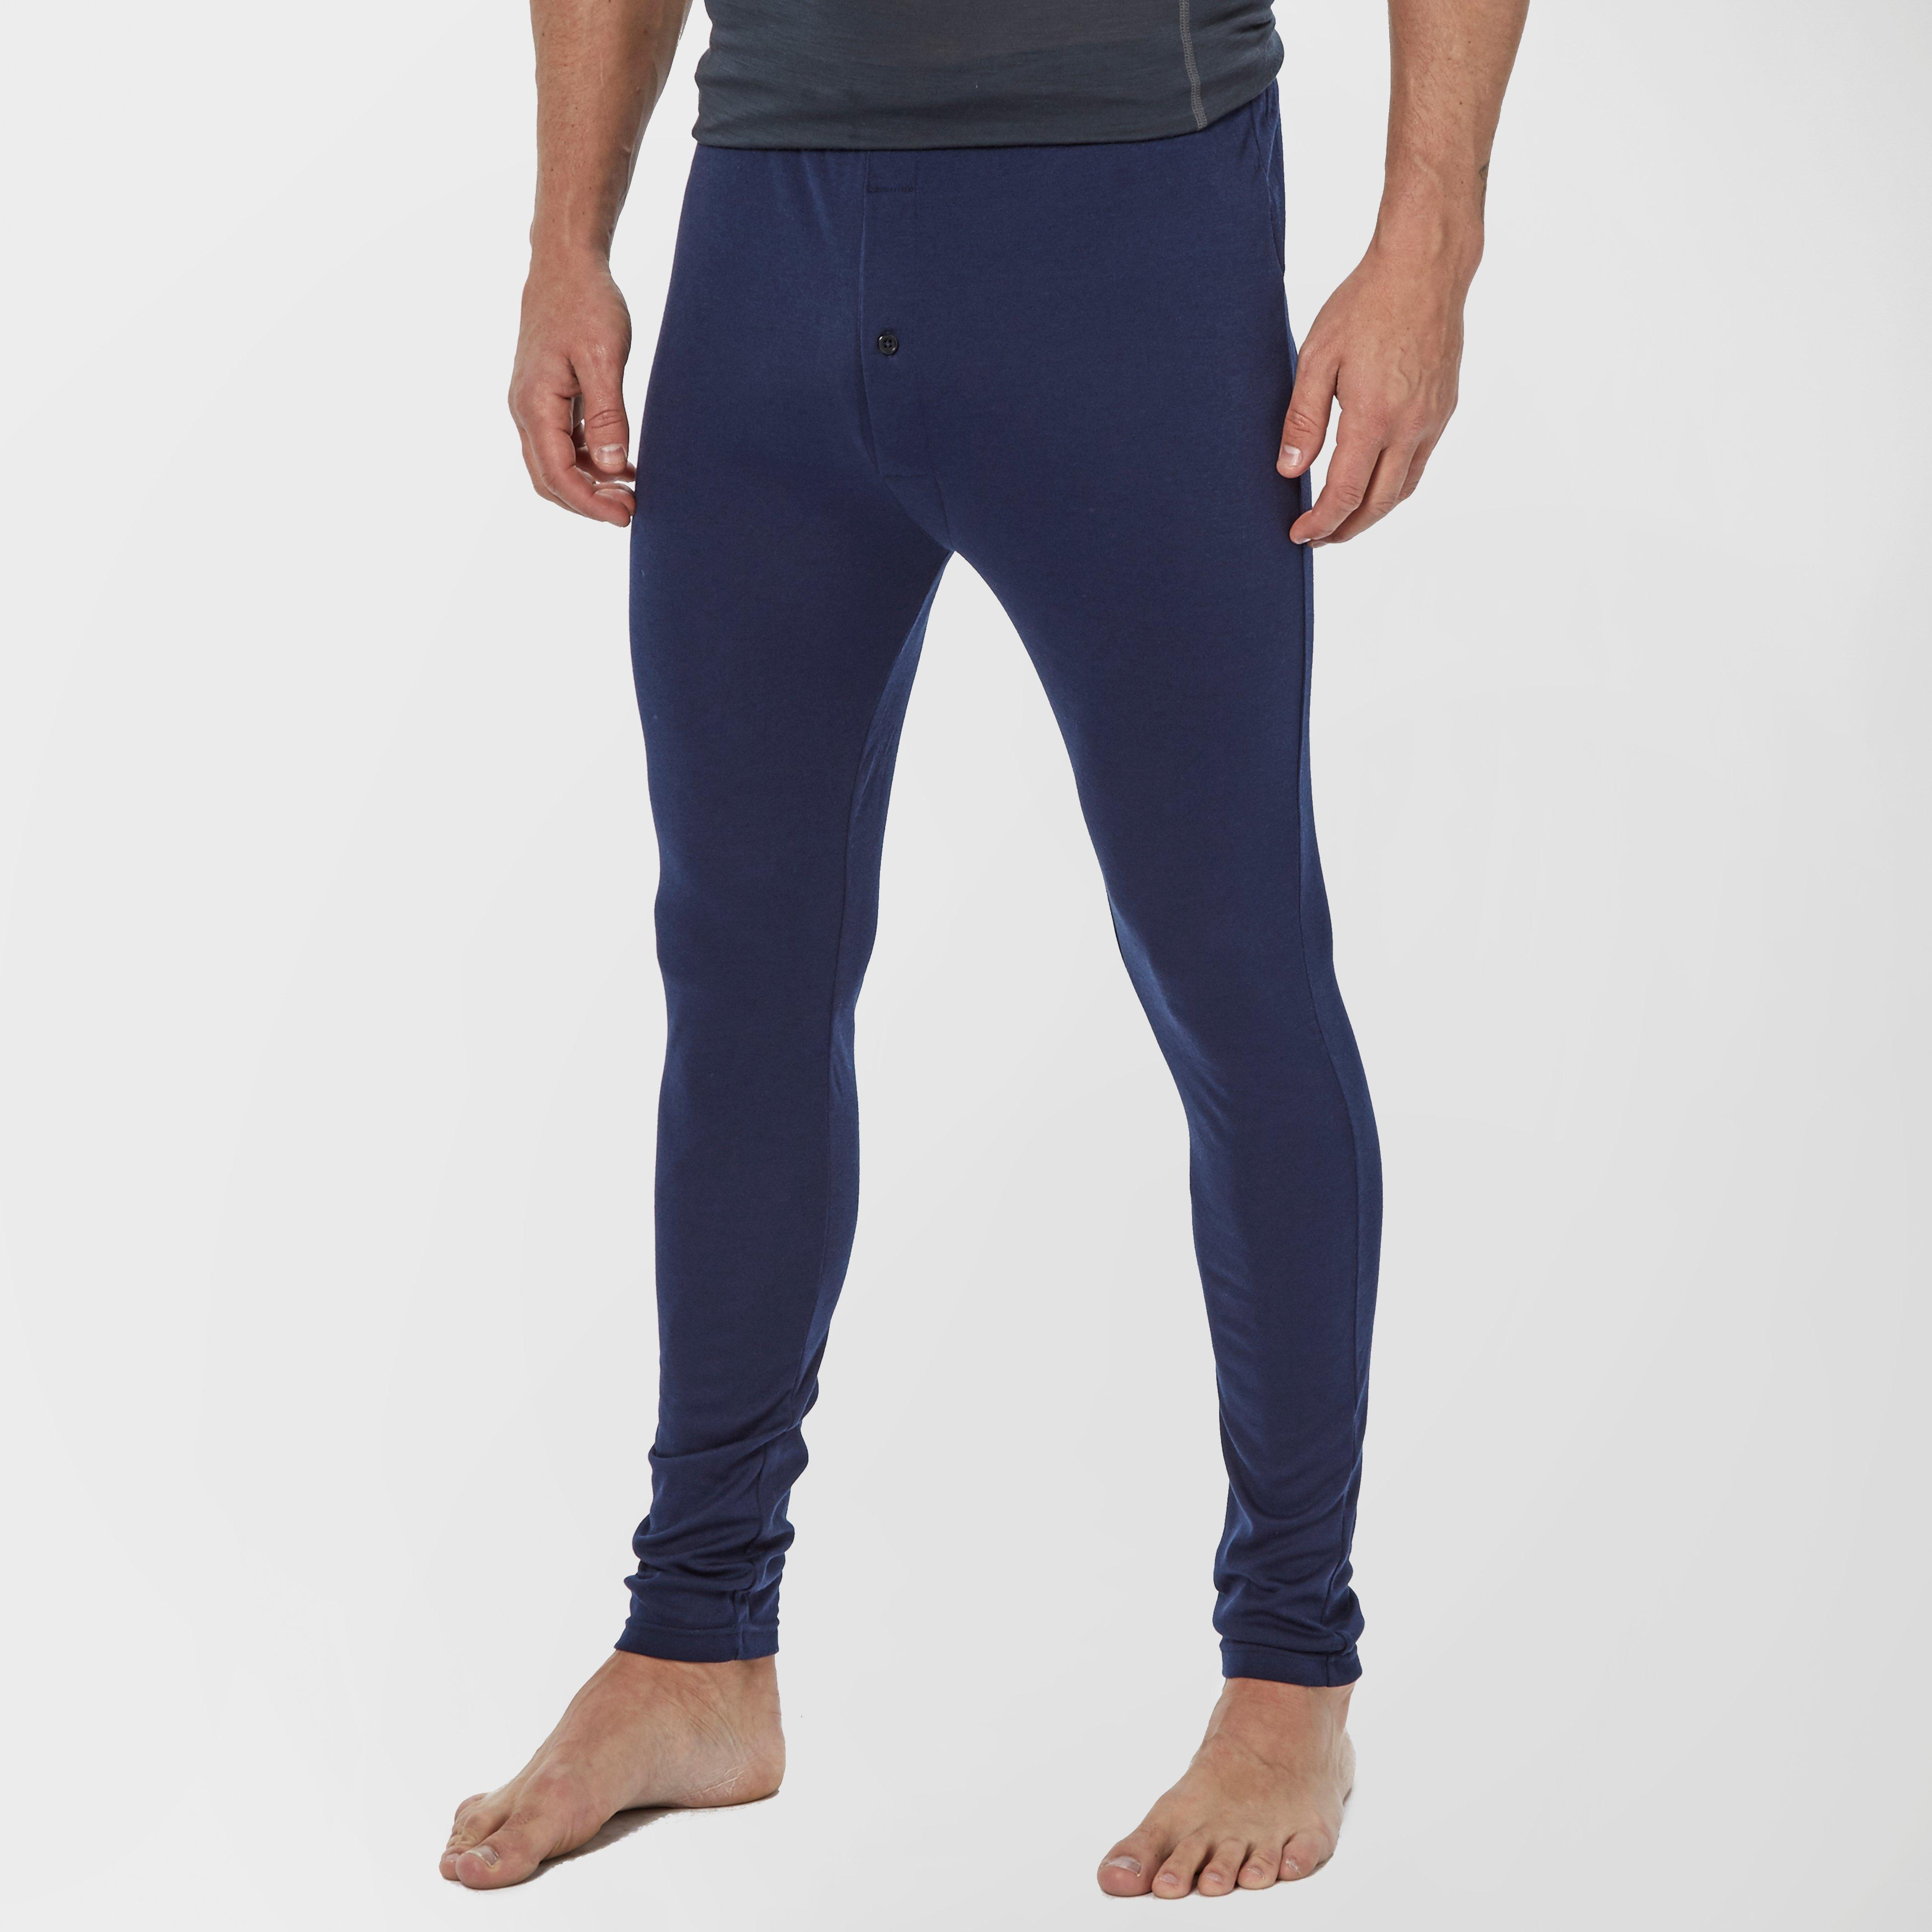 Image of Peter Storm Men's Thermal Baselayer Pants - Navy/Nvy, Navy/NVY